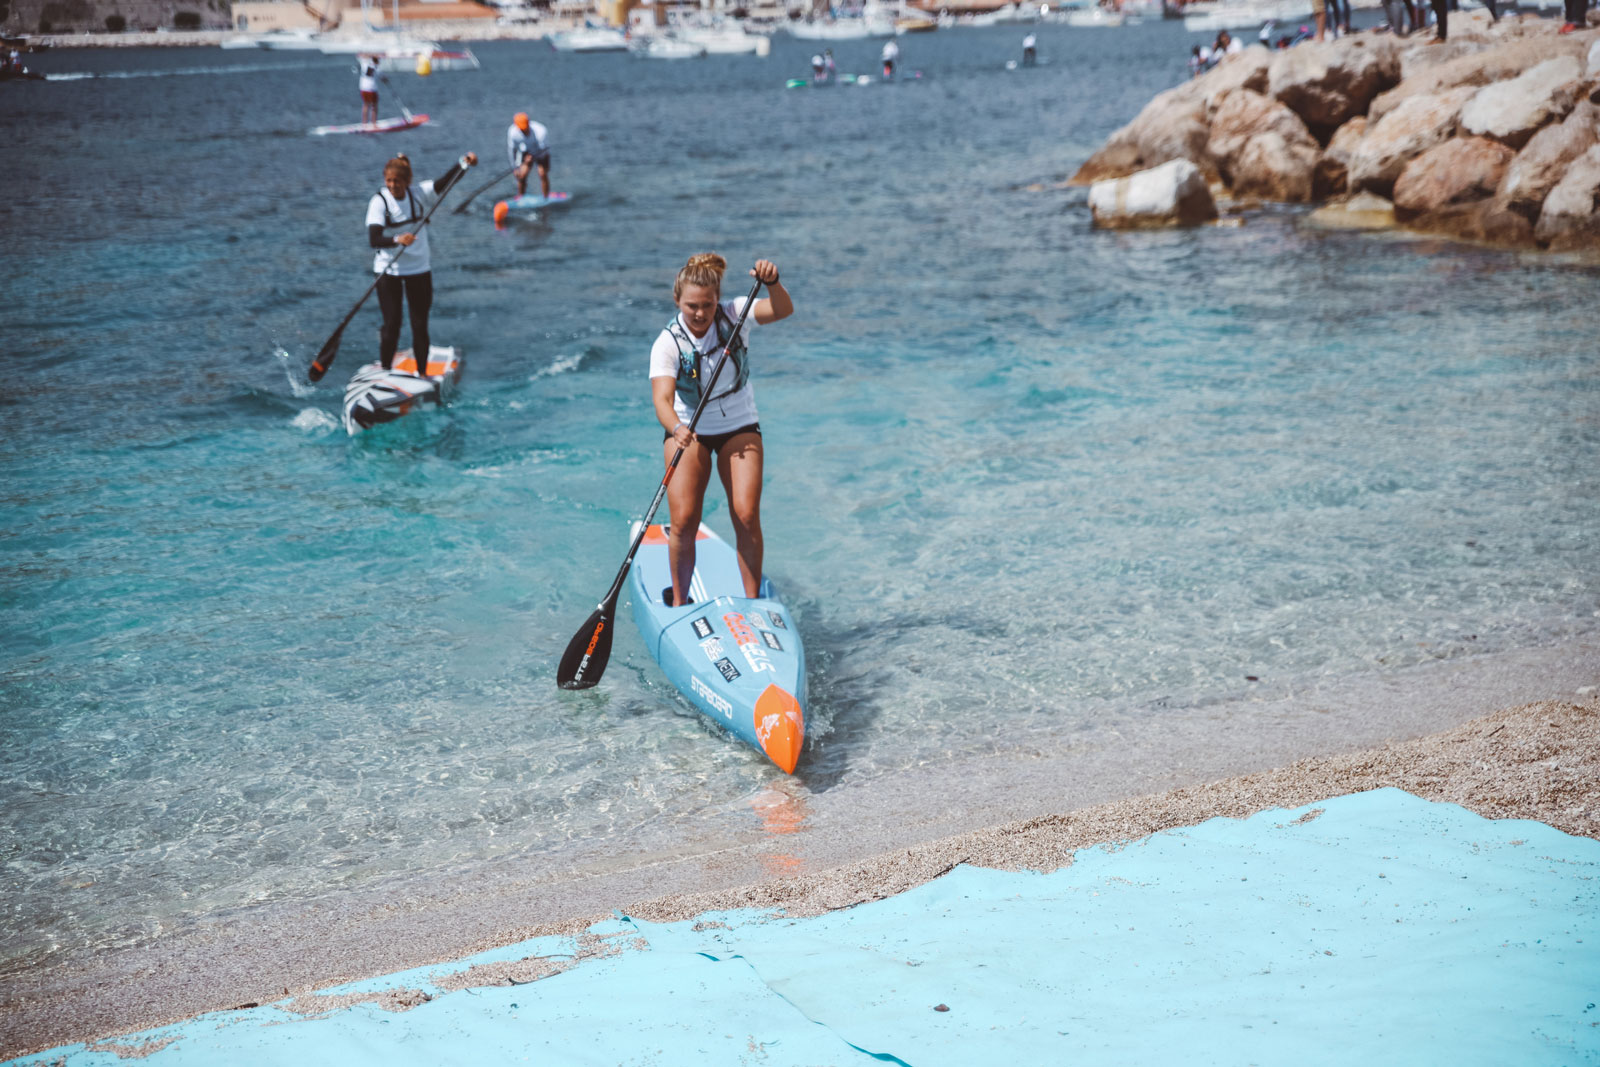 Starboard-SUP-Stand-Up-Paddleboarding-Michael-Booth-Fiona-Wylde-Win-2019-Azur-Paddle-Days-Race-Event-France-Fiona-Finish-Line